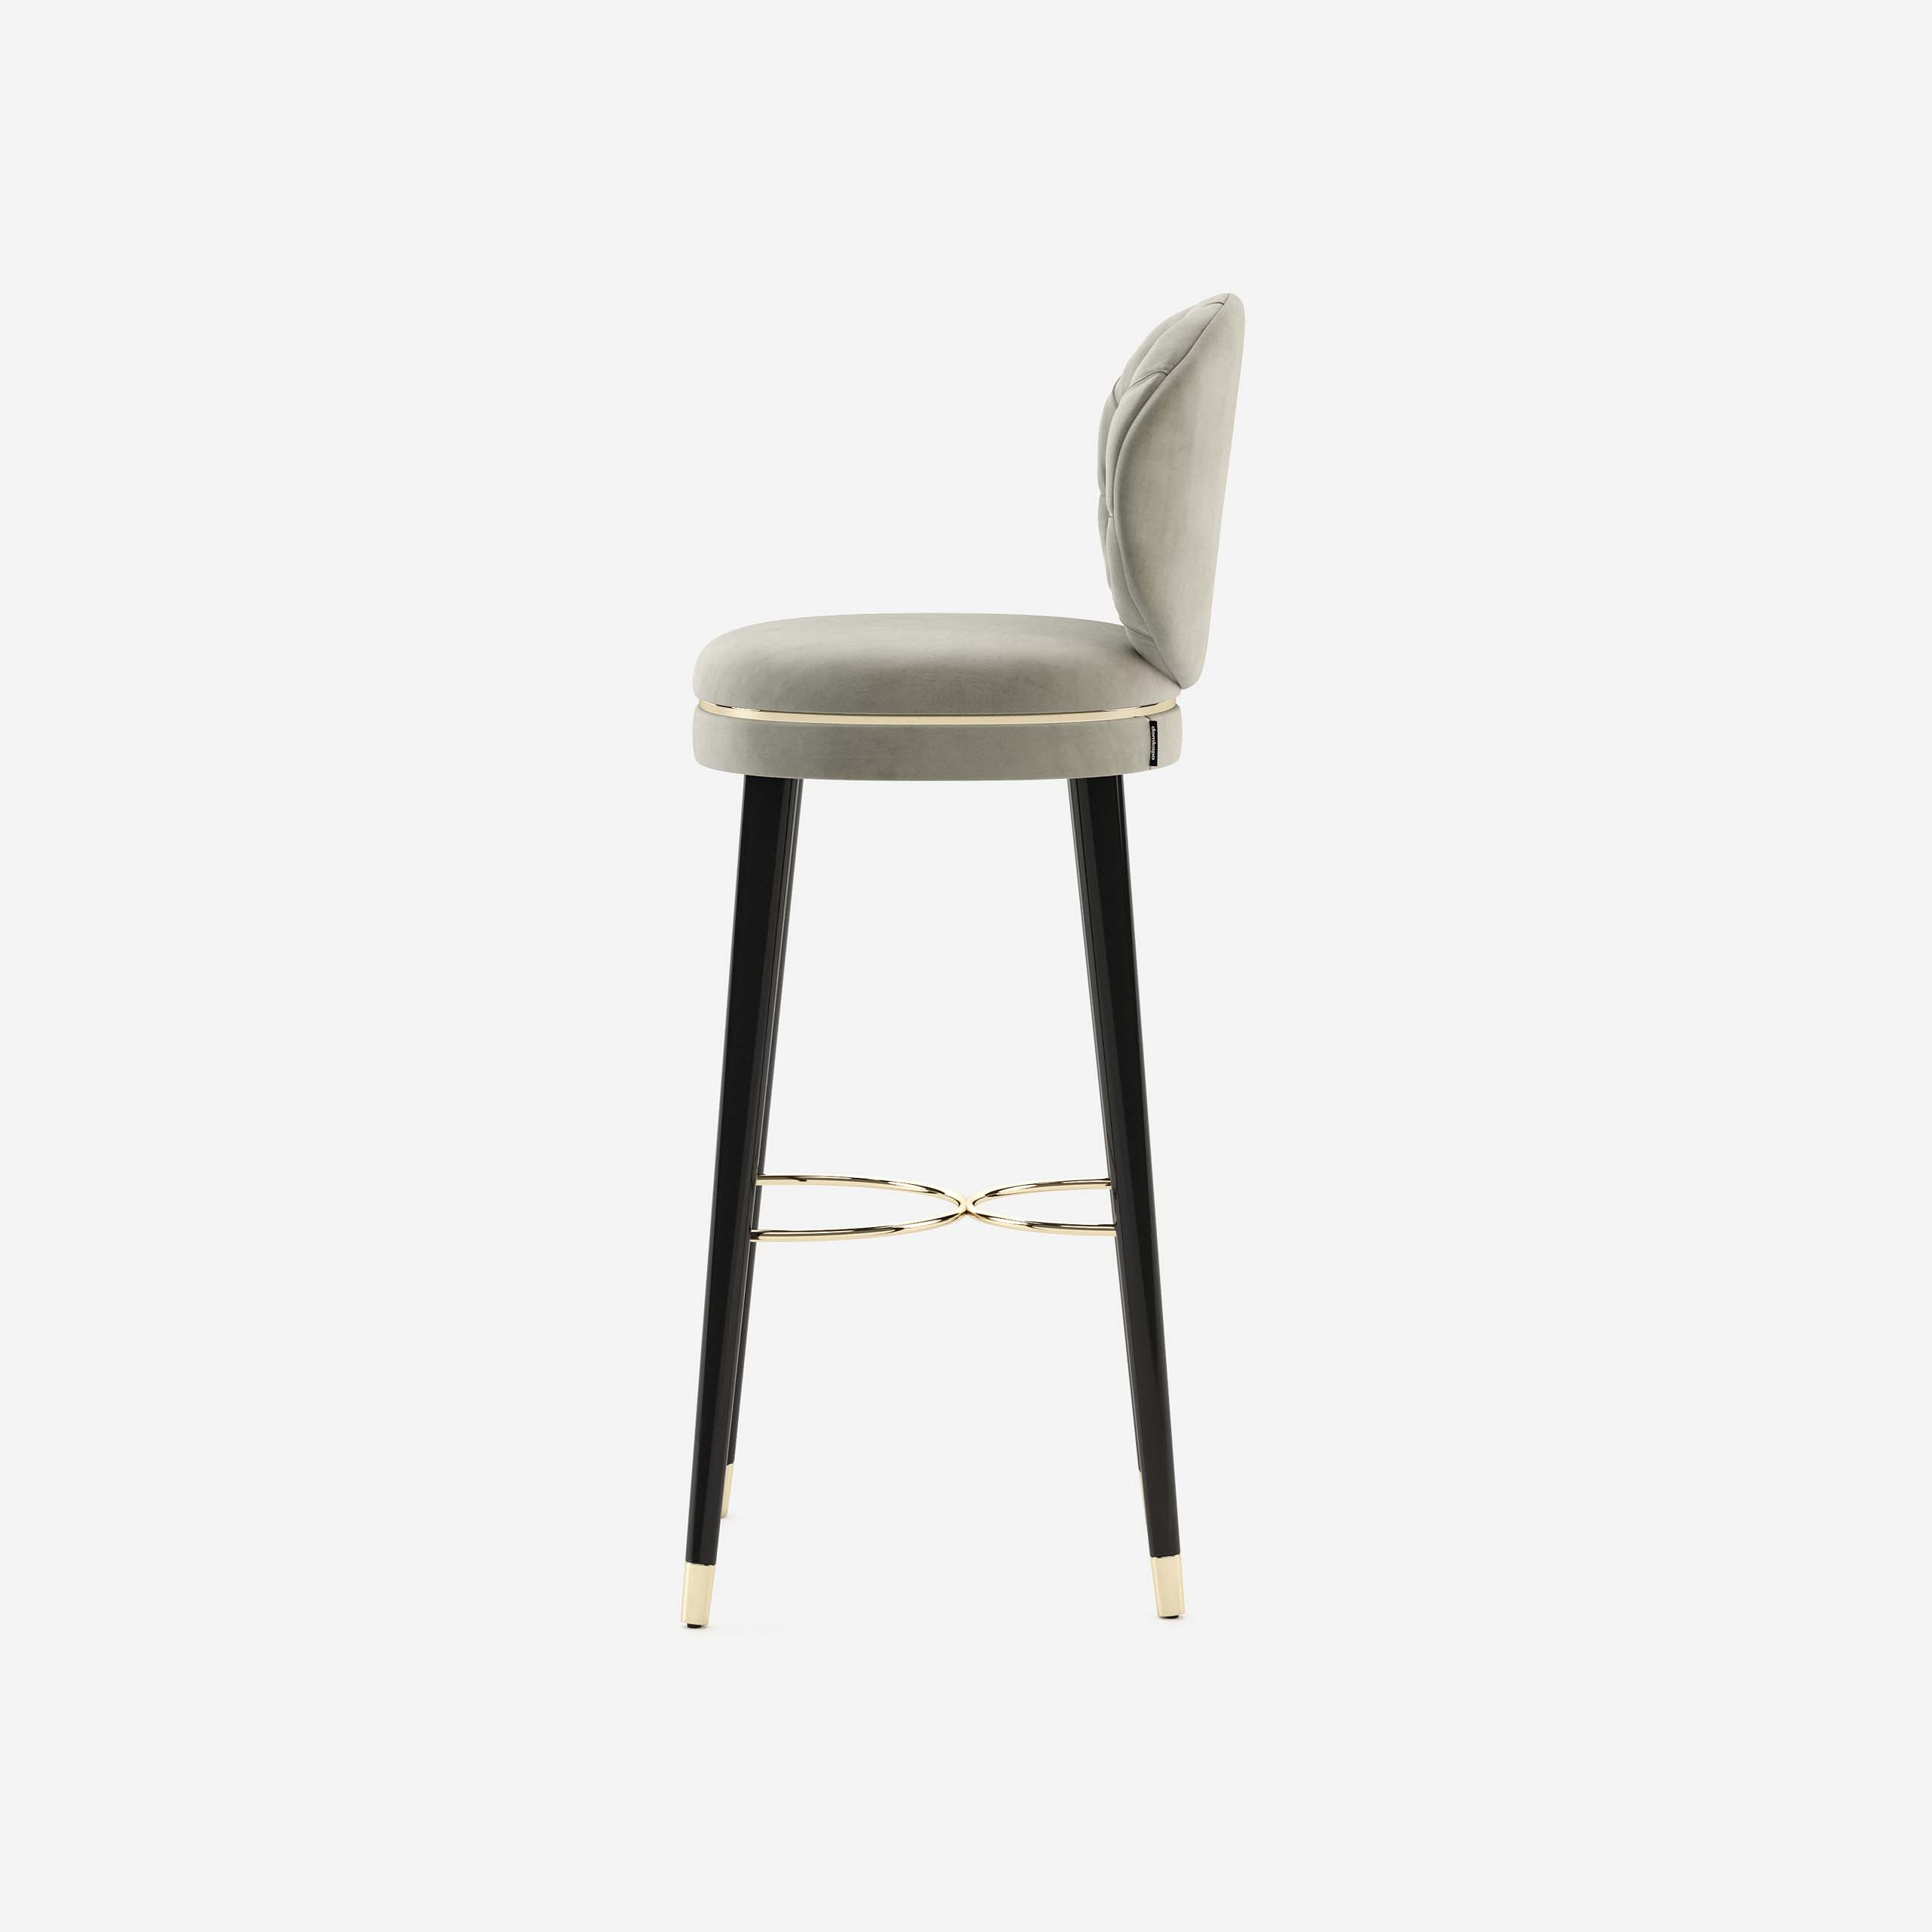 katy-bar-chair-domkapa-new-collection-2021-dining-room-decor